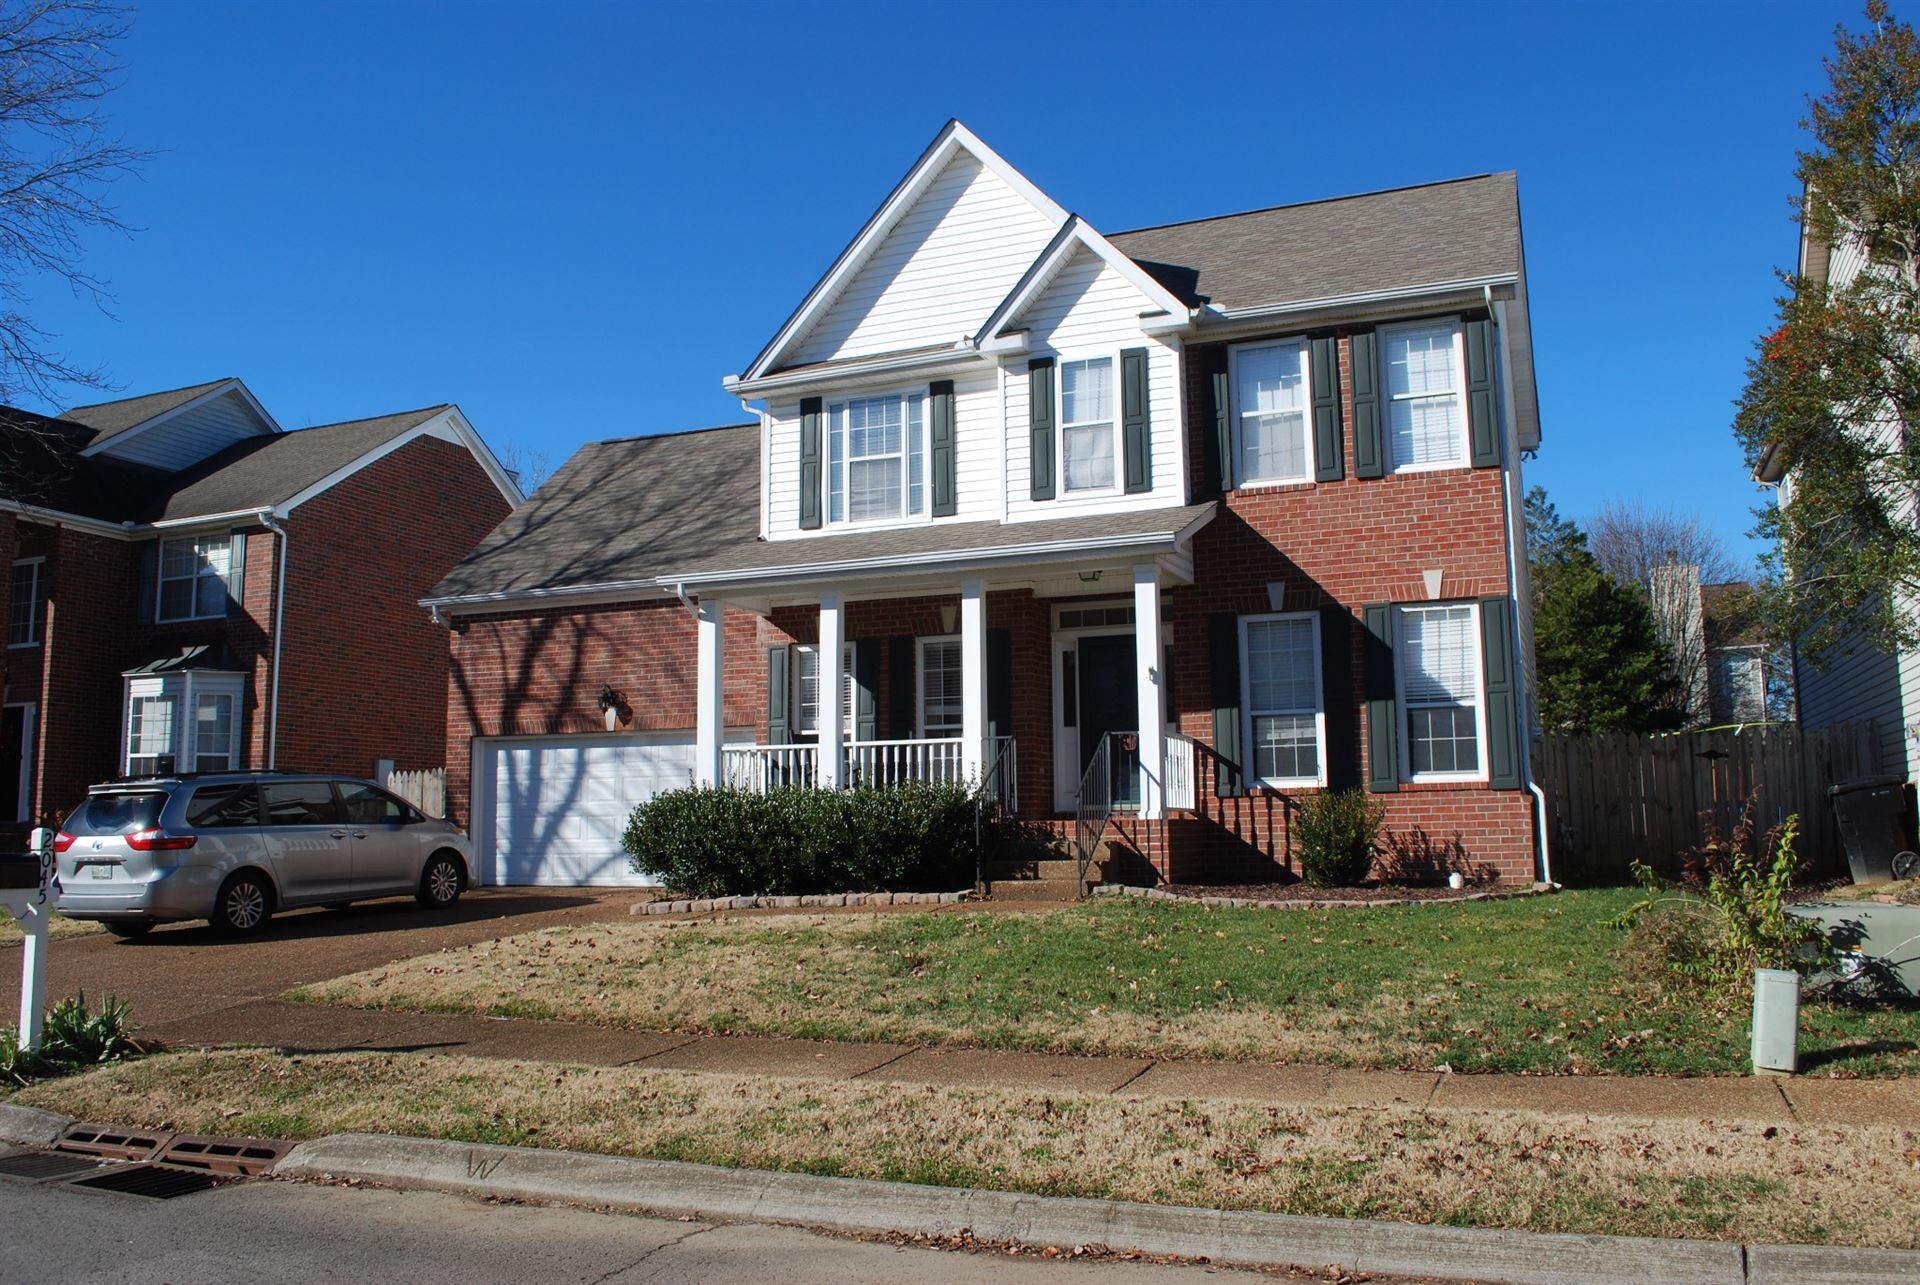 2045 Glastonbury Dr, Franklin, TN 37069 - MLS#: 2221693